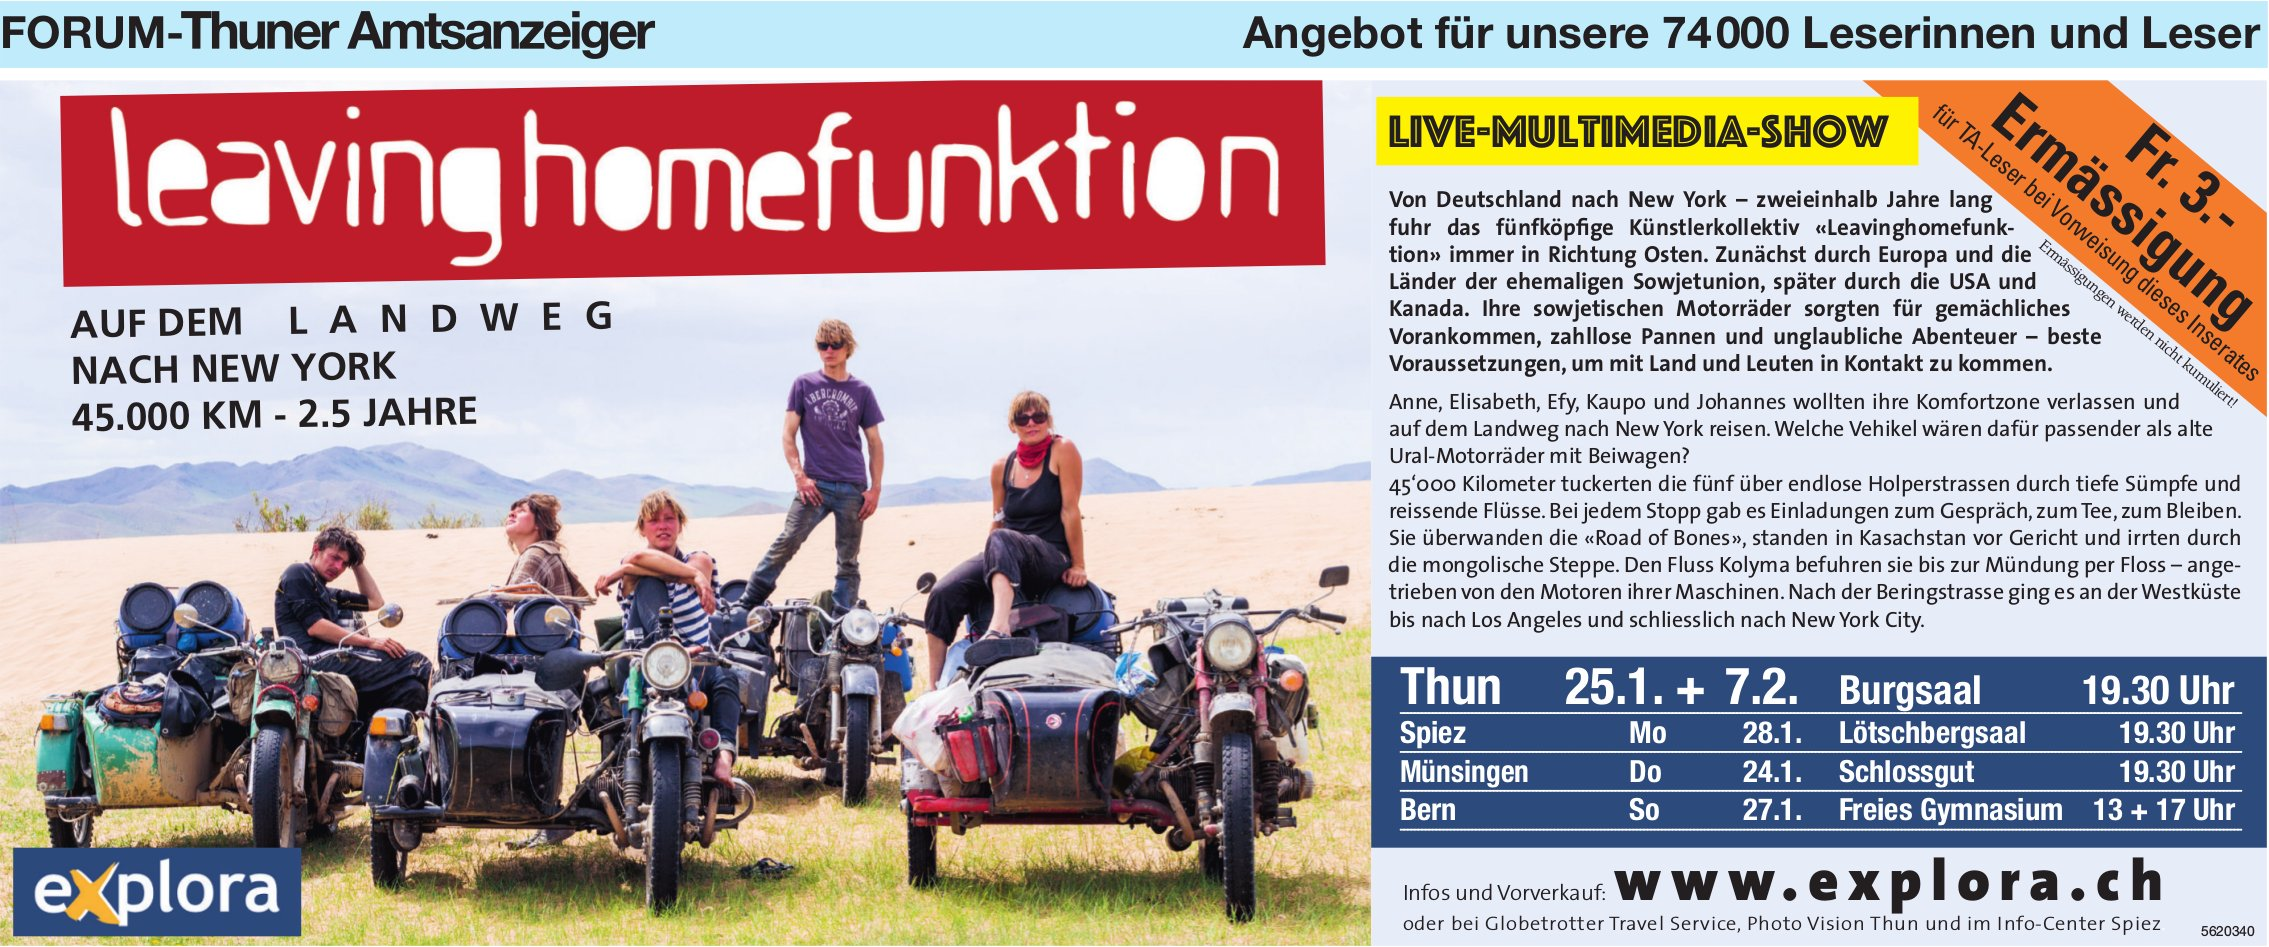 Forum-Thuner Amtsanzeiger - LeavingHomeFunktion, Live-Multimedia-Show